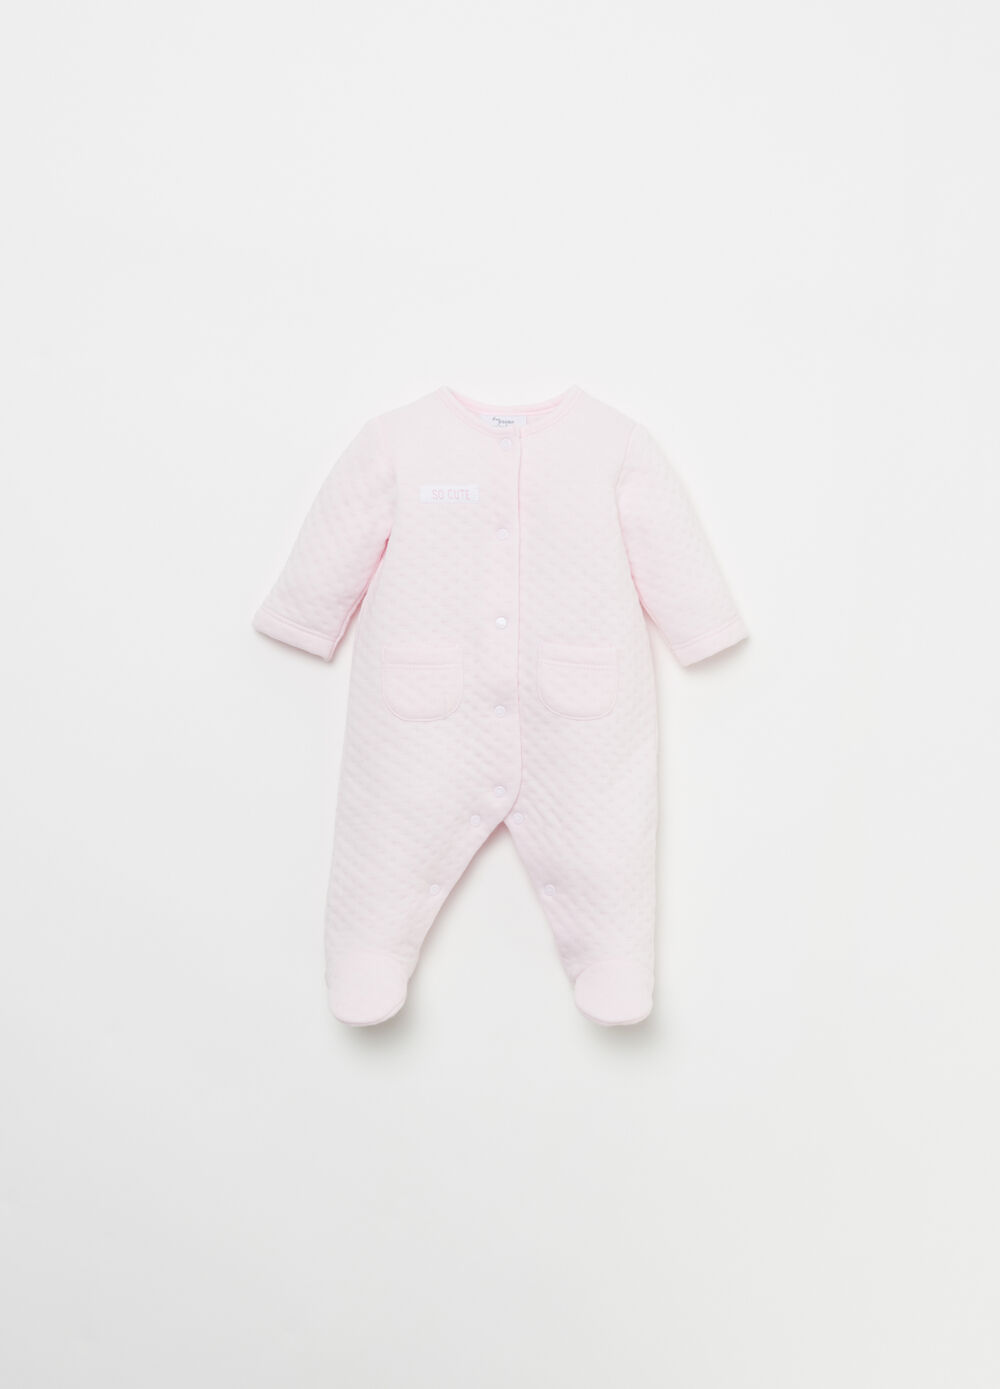 BCI cotton jacquard layered onesie